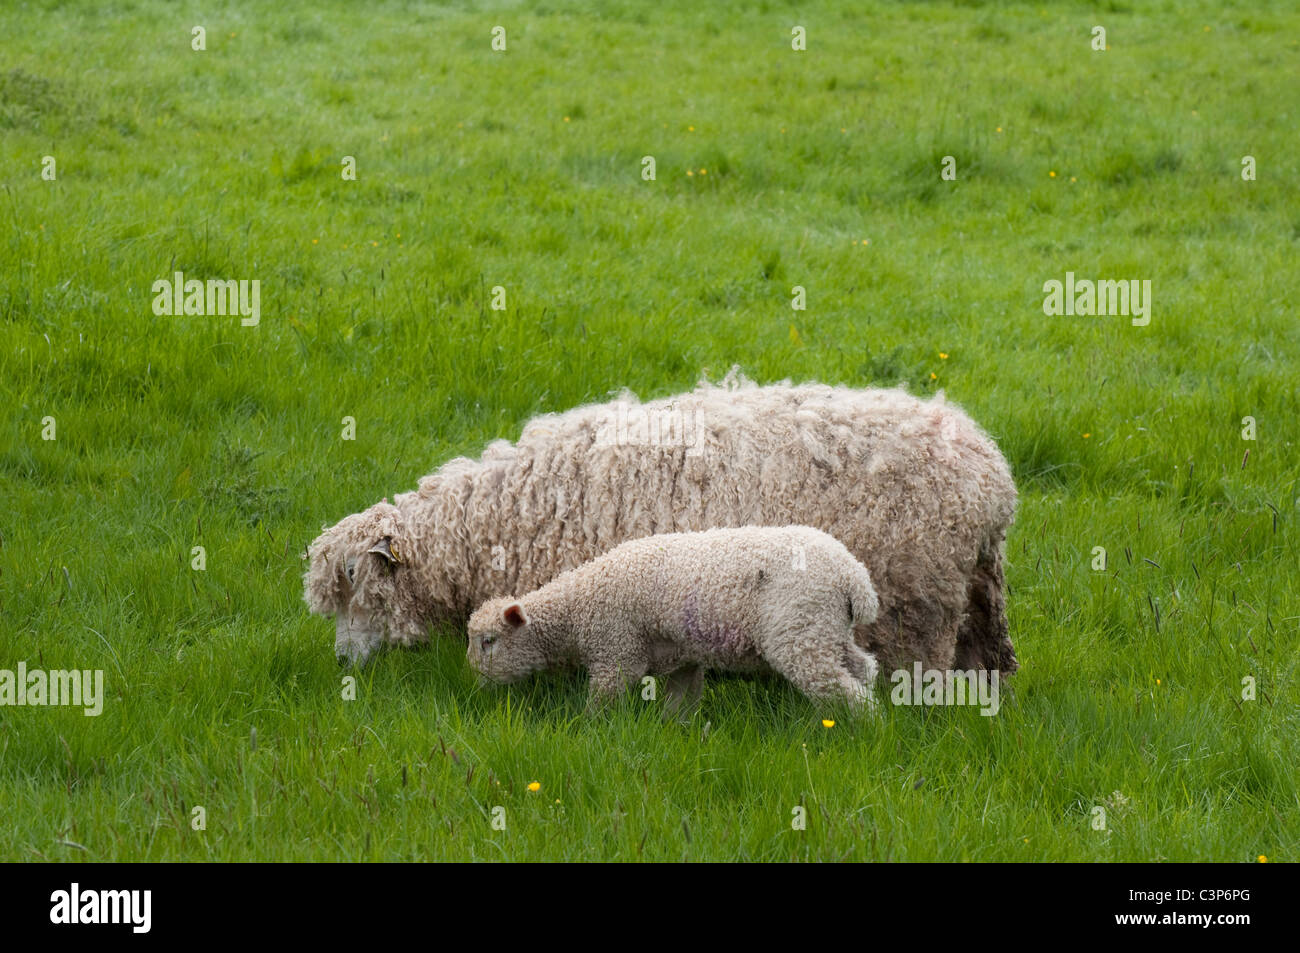 Cotswold ( Lion ) ewe / sheep and lamb - grazing in long grass. Cotswolds, UK - Stock Image